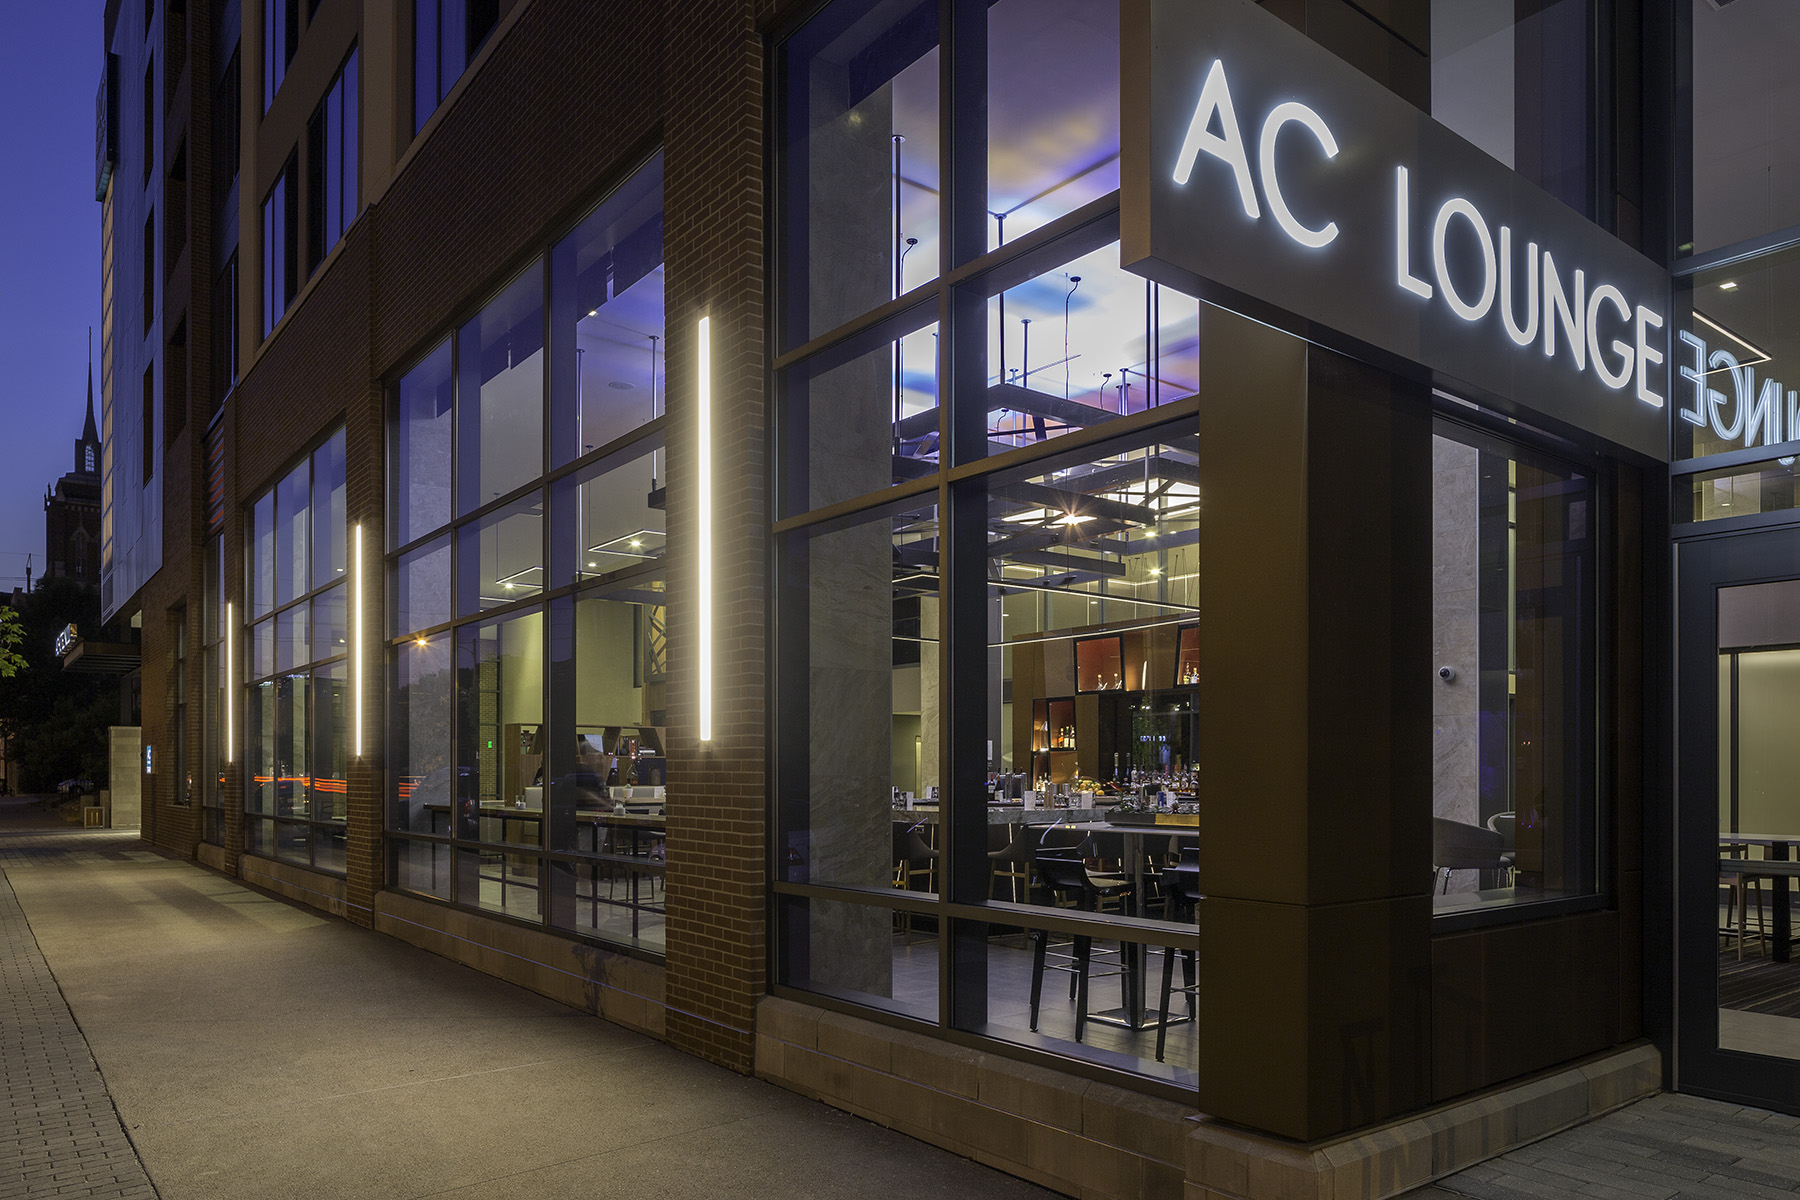 Street entrance to AC Lounge in Louisville